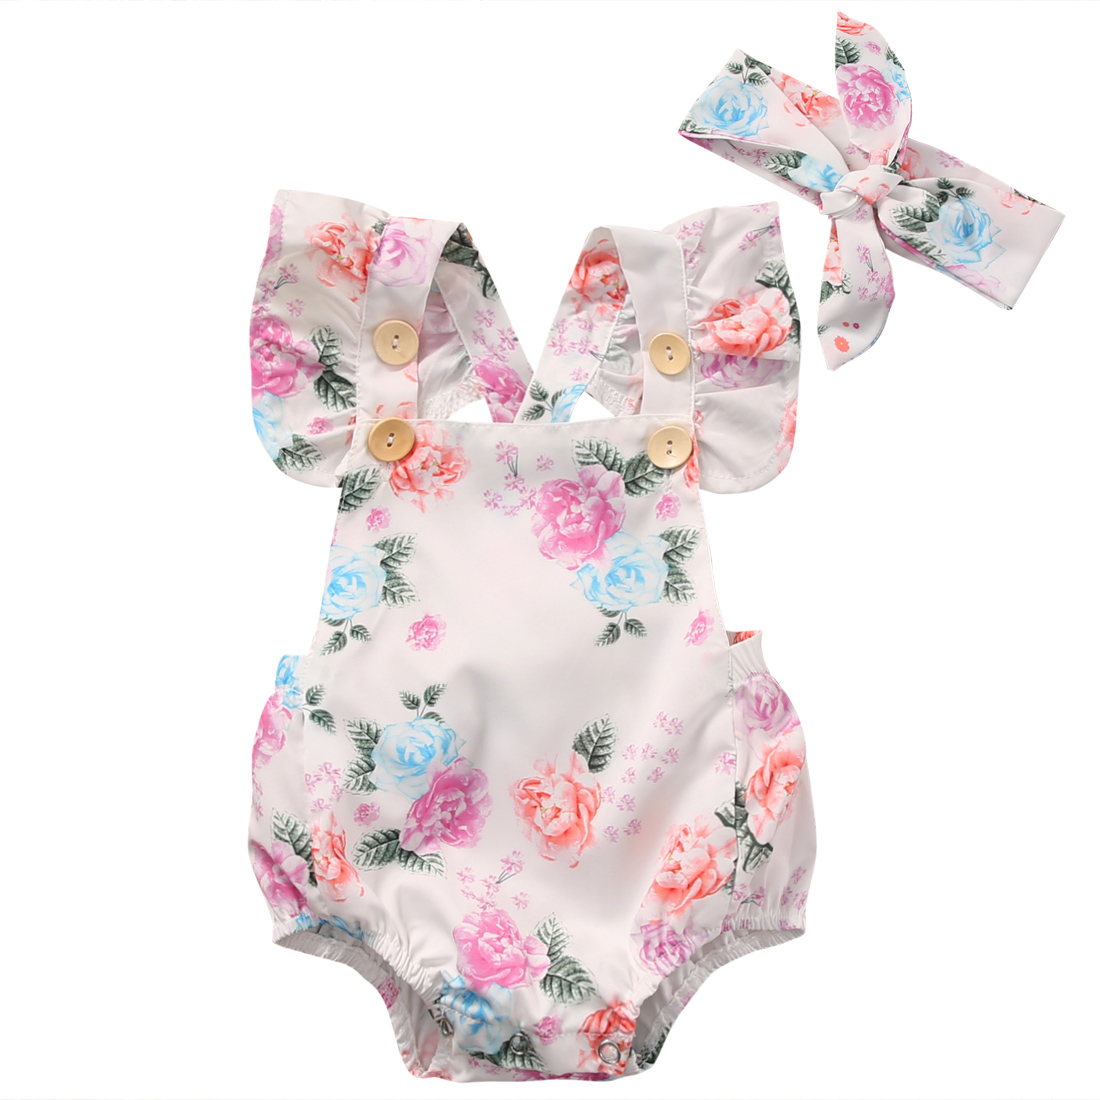 2017 Cute Floral Infant Baby Girls Summer Flower Romper Sunsuit+Headband Cotton Outfits Set Clothes pudcoco newborn infant baby girls clothes short sleeve floral romper headband summer cute cotton one piece clothes